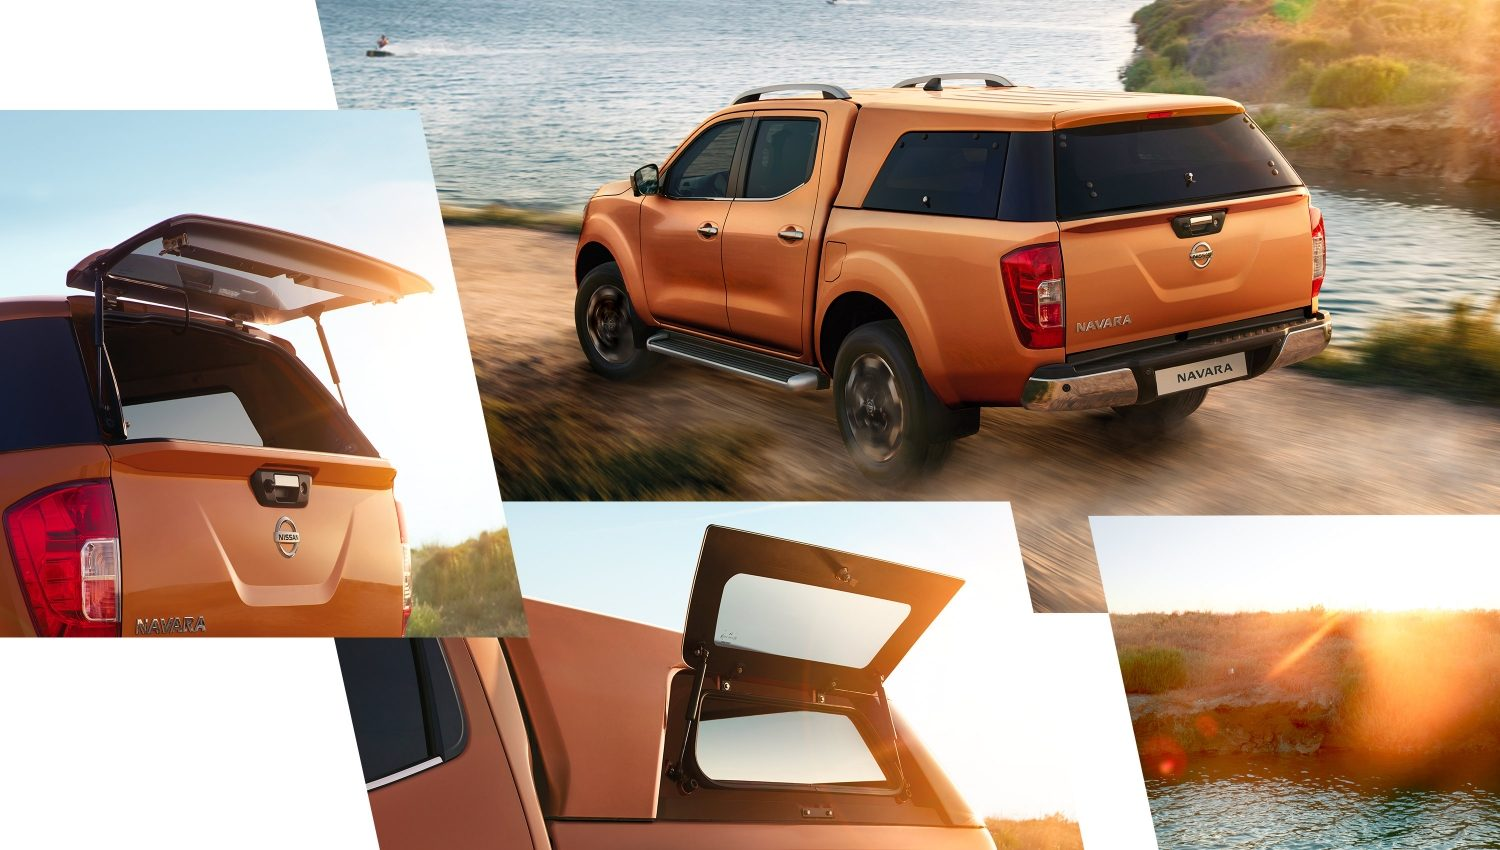 Nissan Navara comp showing the different hard tops